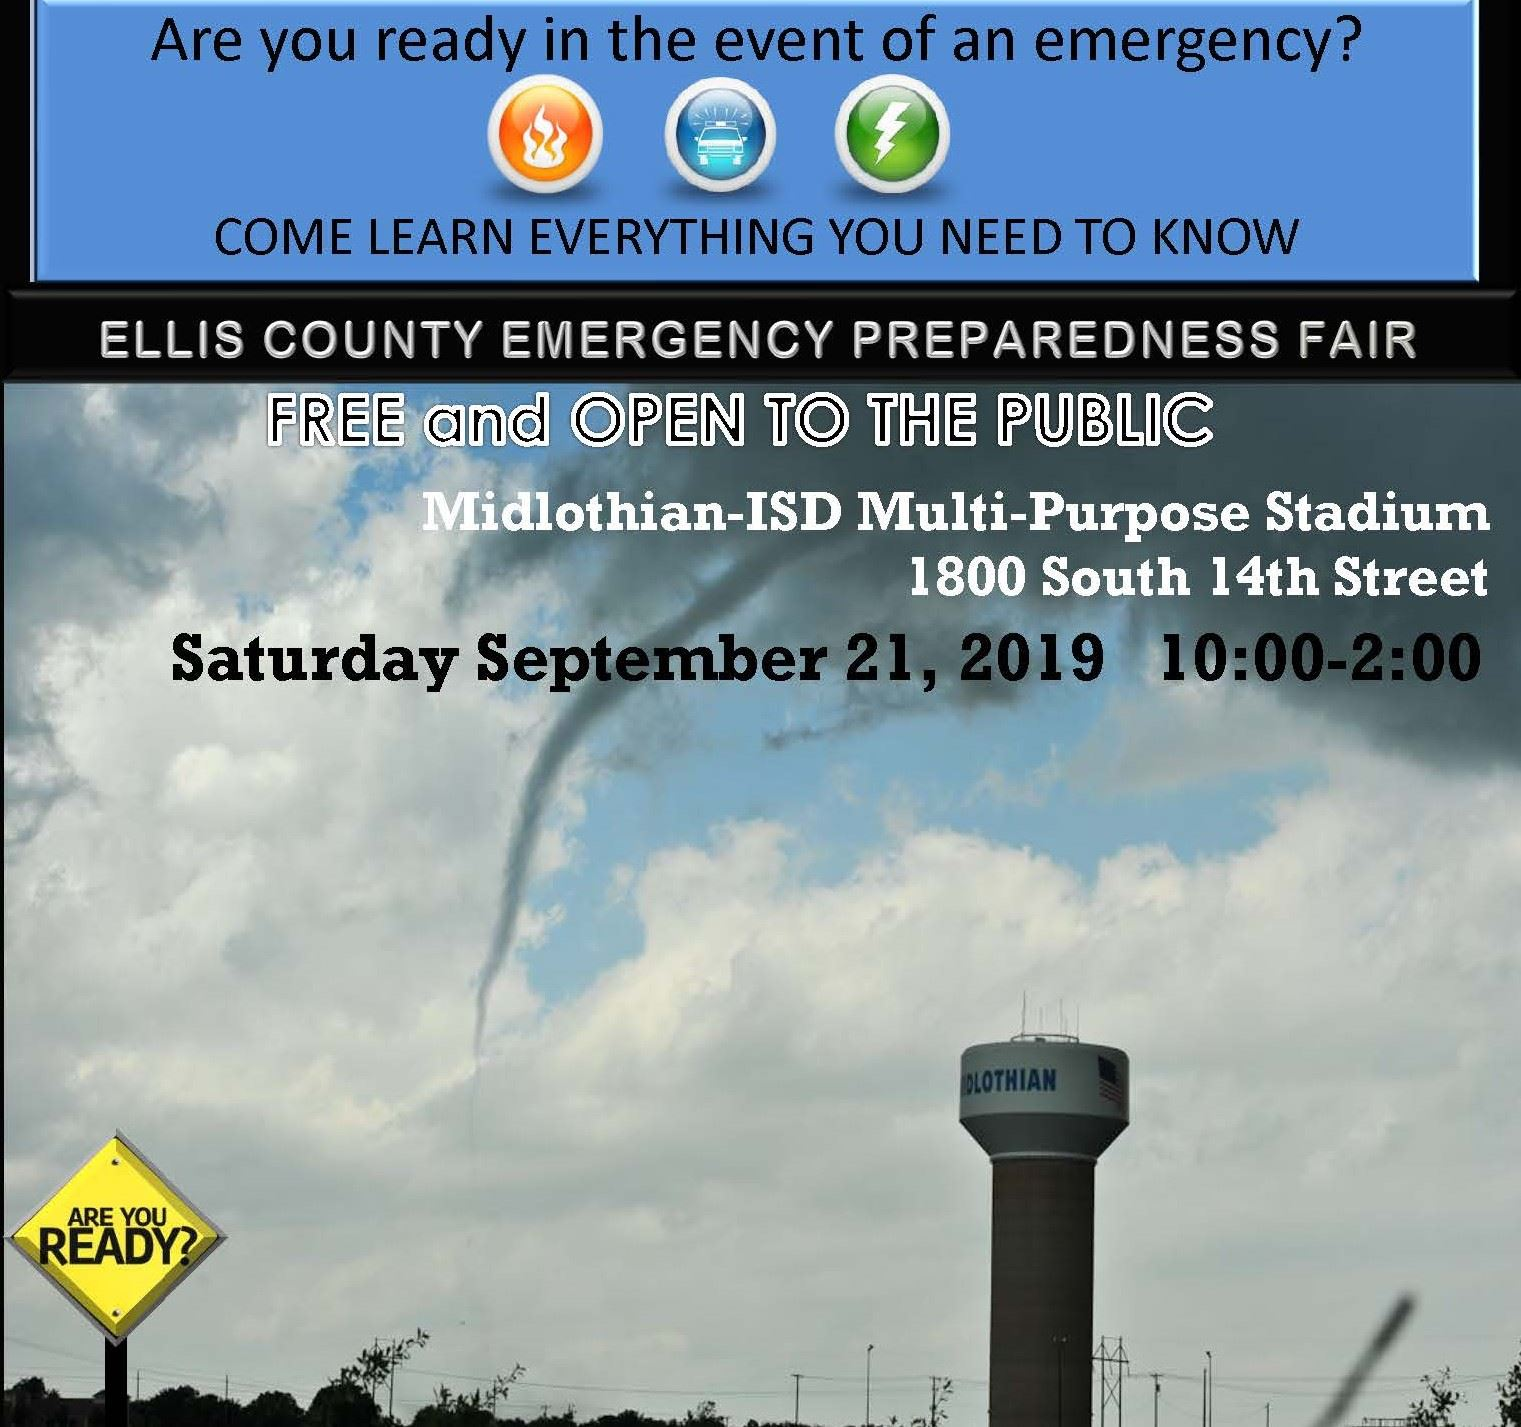 2019 EC Emergency Preparedness